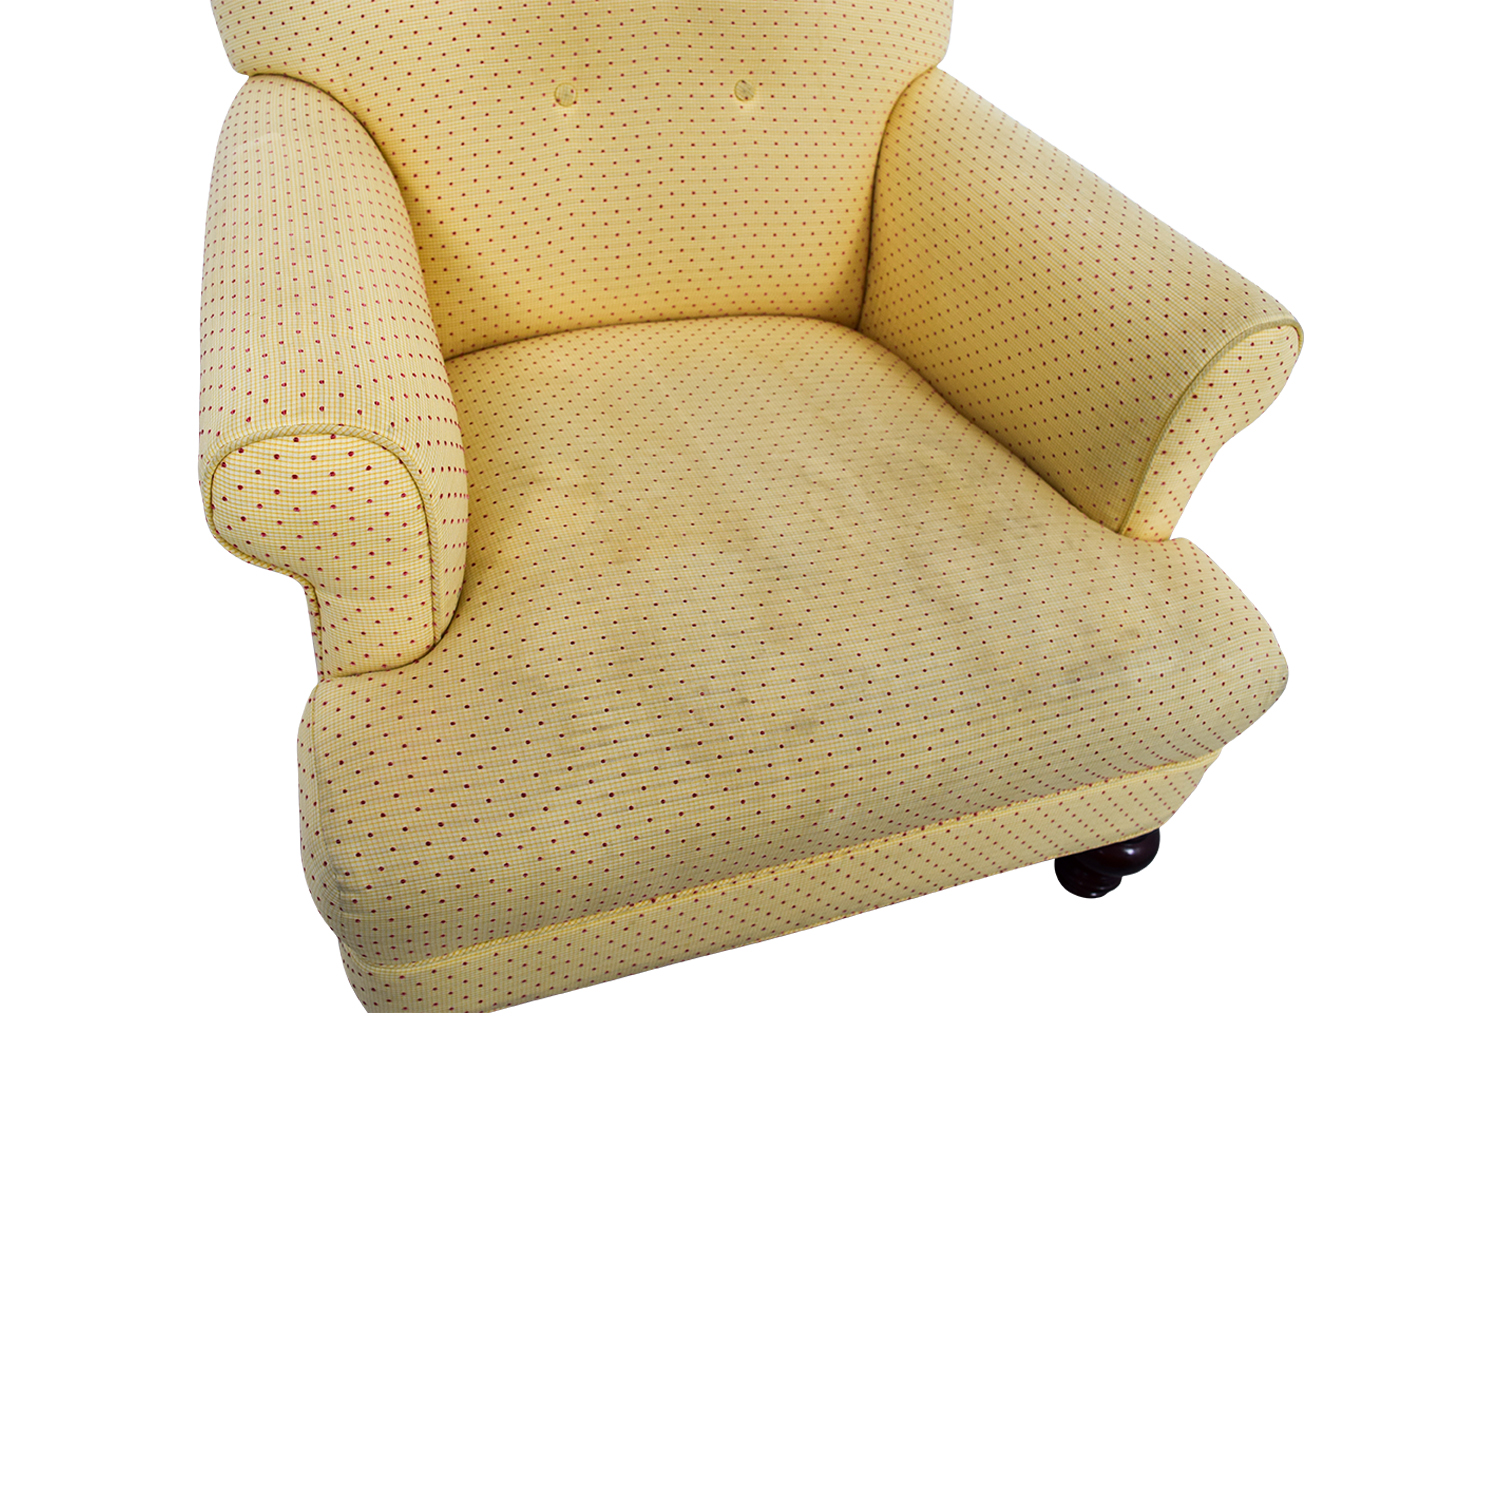 90 OFF  Yellow Arm Chair with Ottoman  Chairs